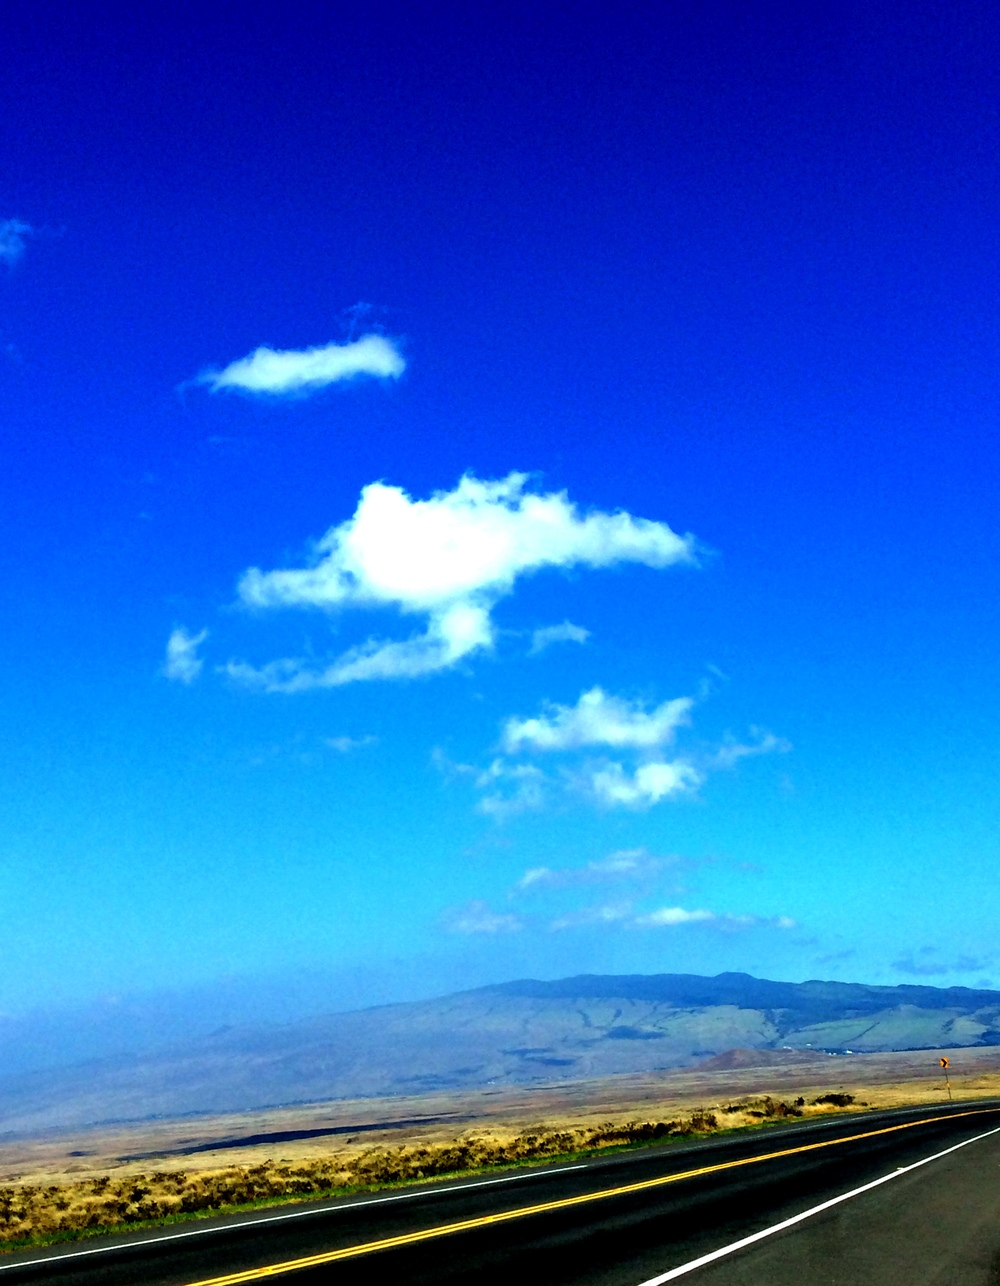 Kohala Mountain from Hwy 190